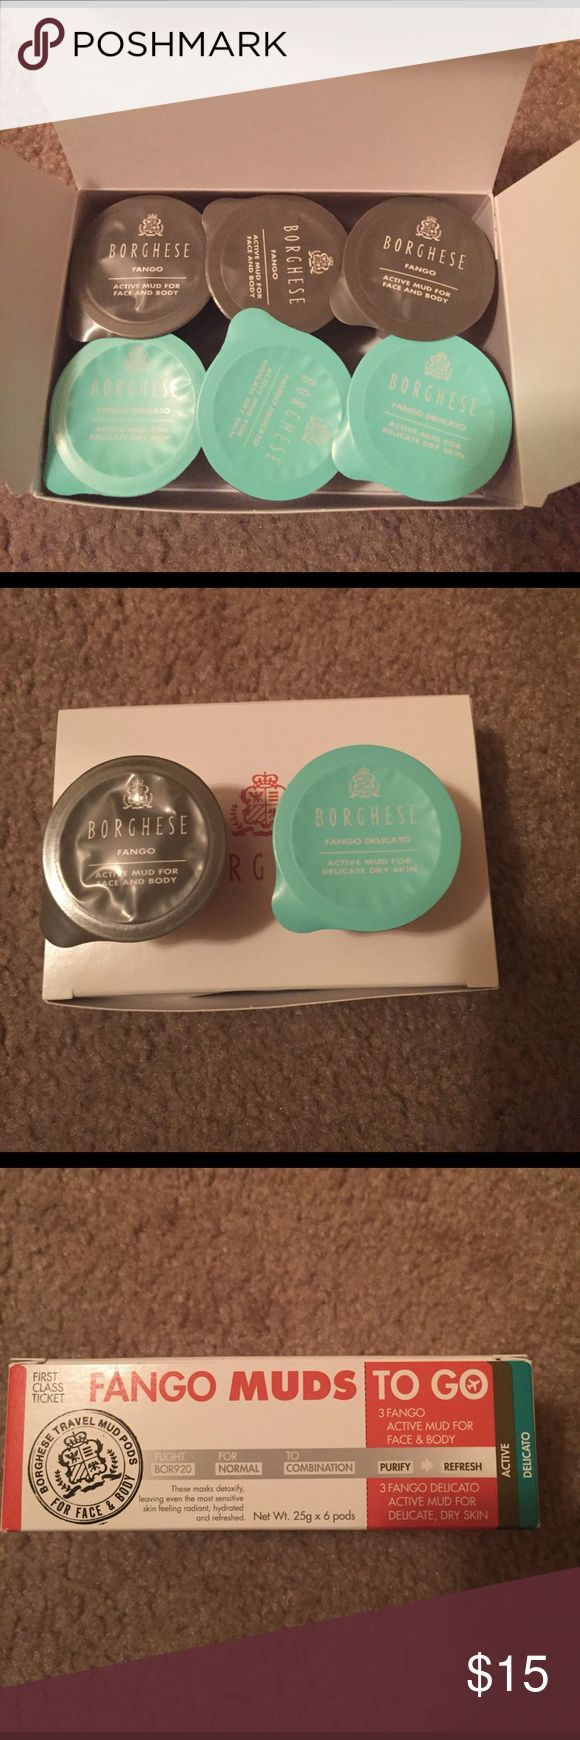 Borghese Active Mud Mask Borghese Fango Muds to go includes 3 active mud for face & body, 3 active mud for delicate dry skin. Great for travel. Never opened. Borghese Makeup